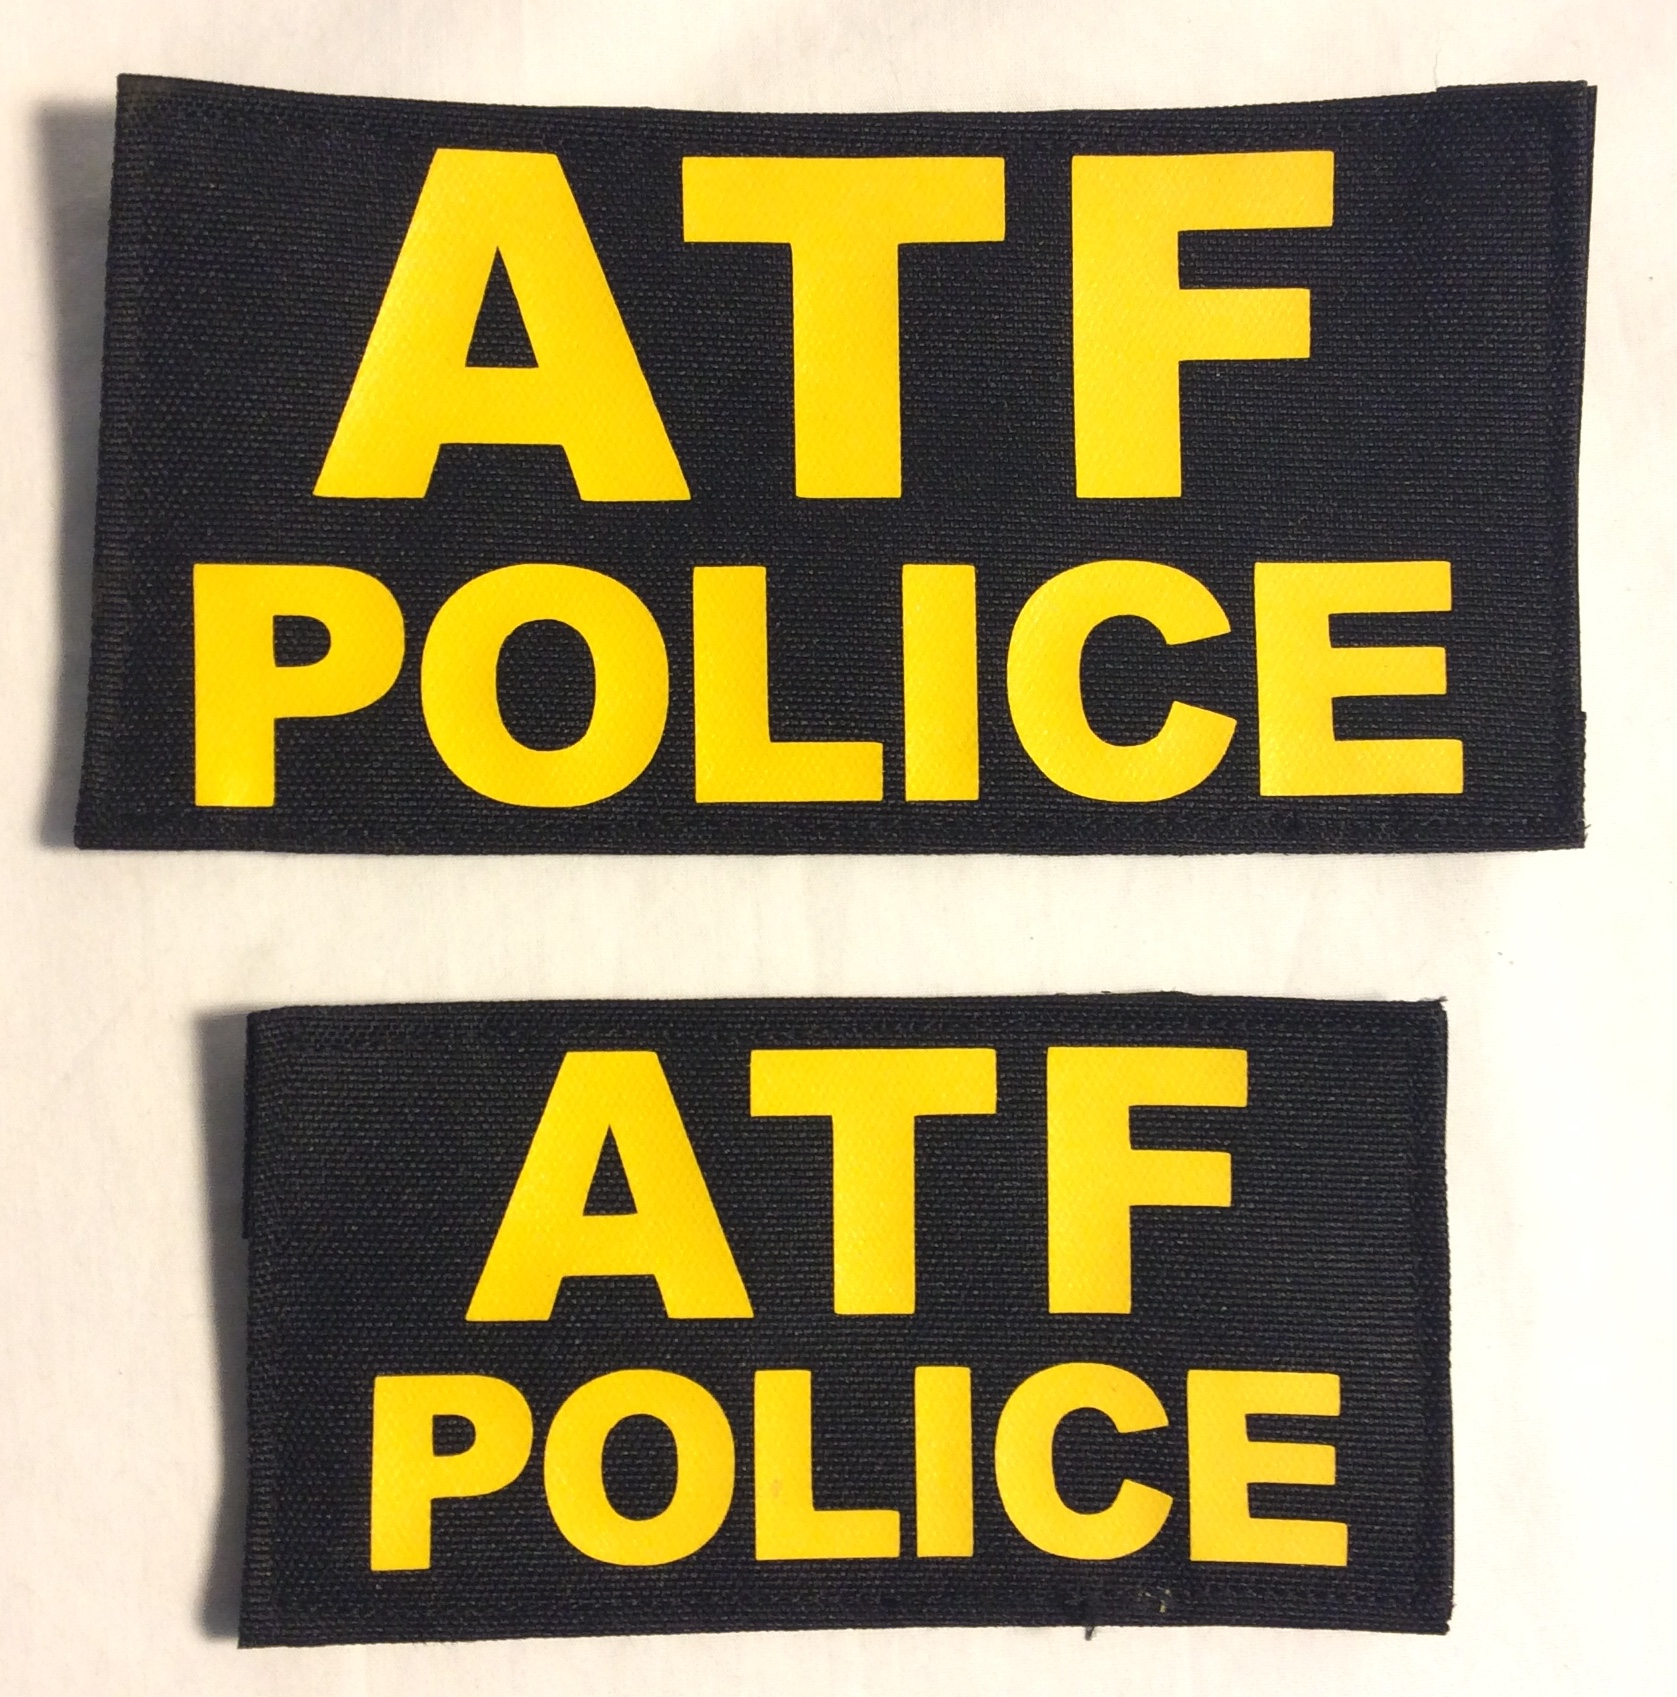 ATF Police Velcro Patches, large